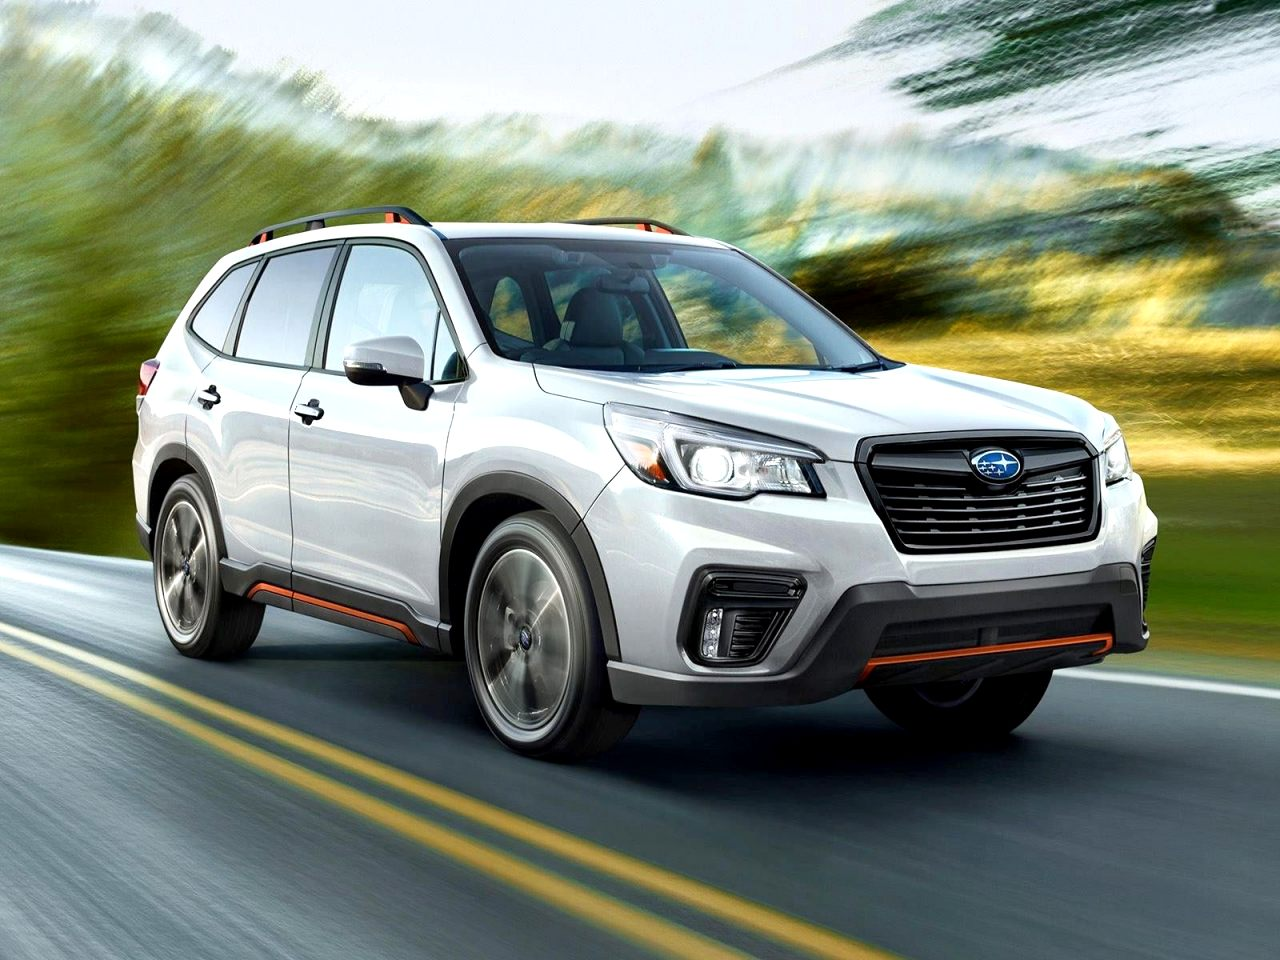 2020 subaru forester zero to 60 Performance and New Engine